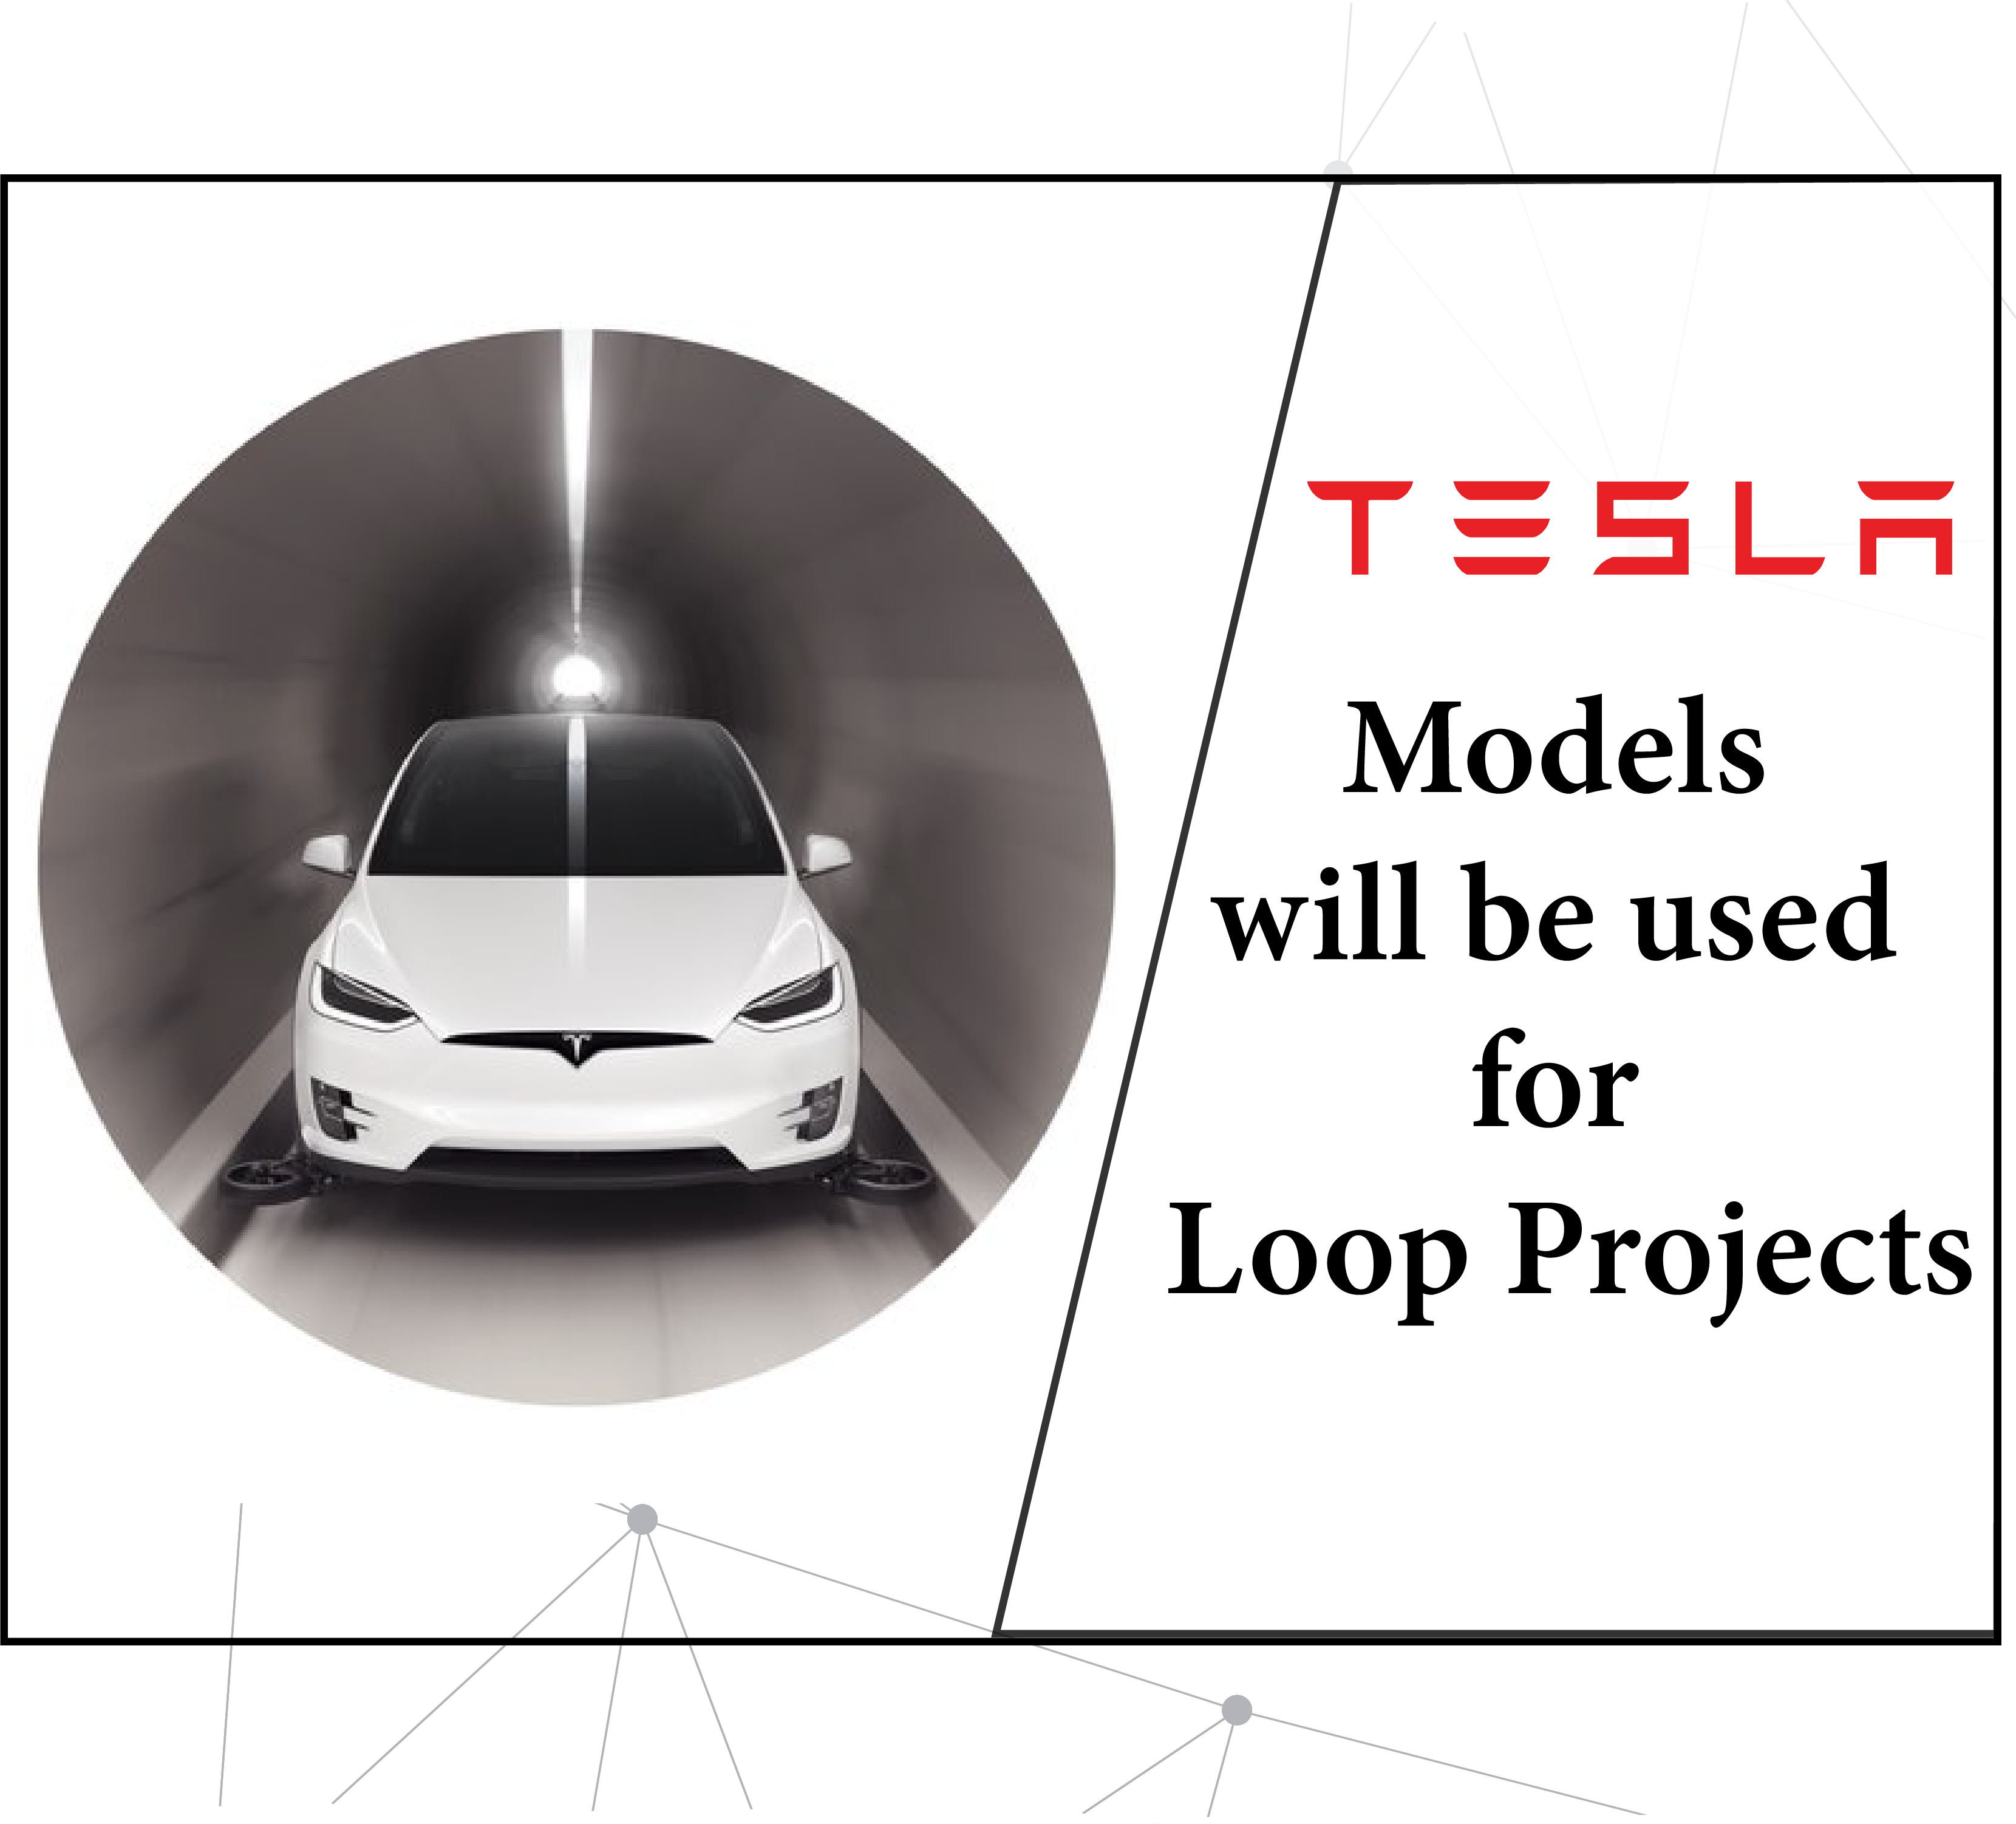 tesla-models-will-be-used-for-the-loop-projects